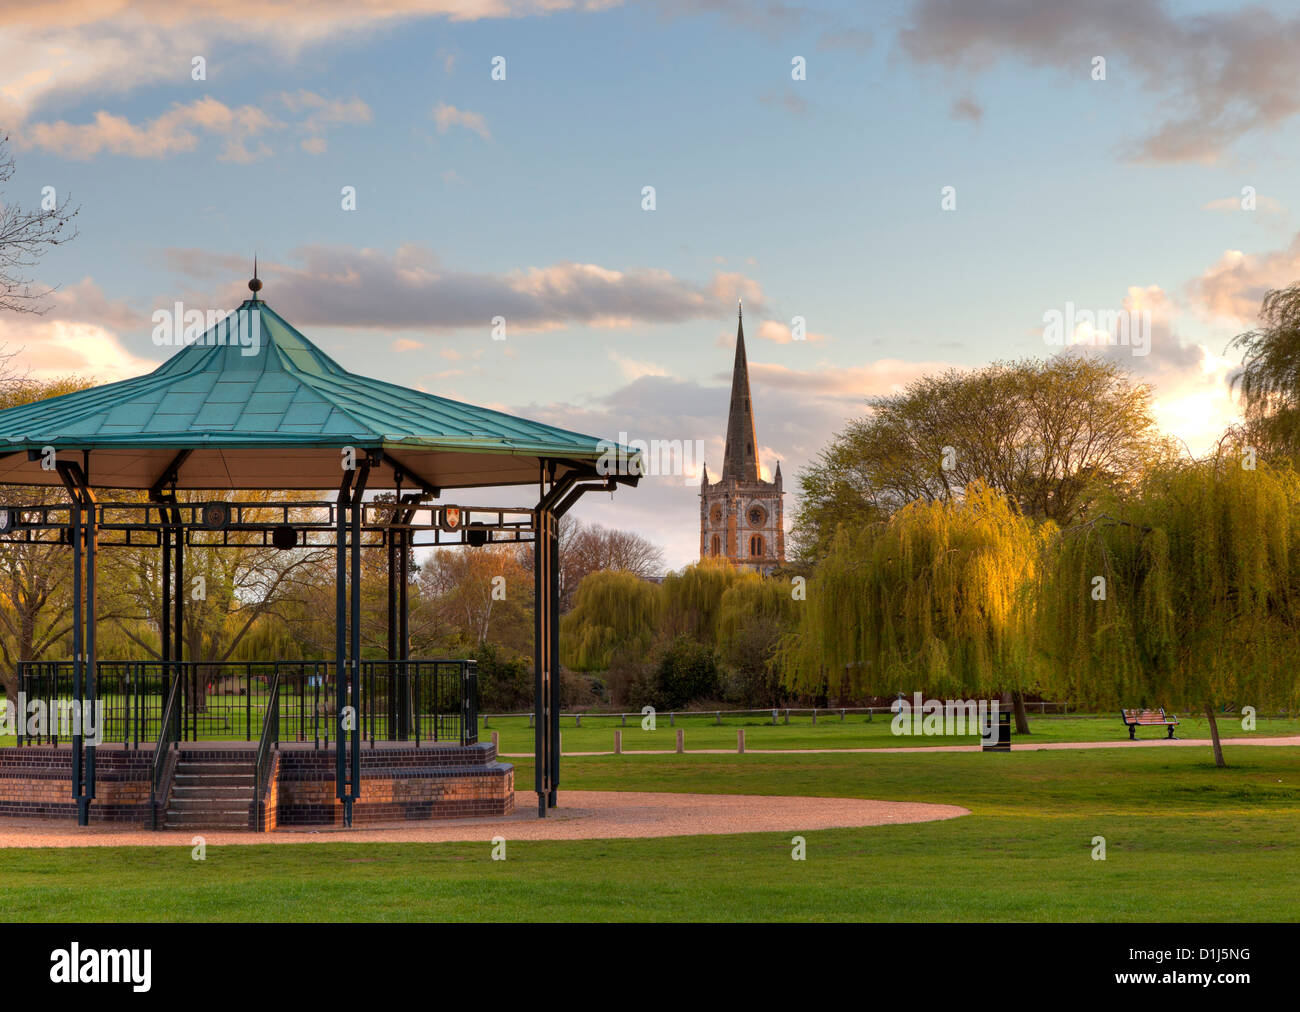 Bandstand and church at Stratford upon Avon, England. - Stock Image